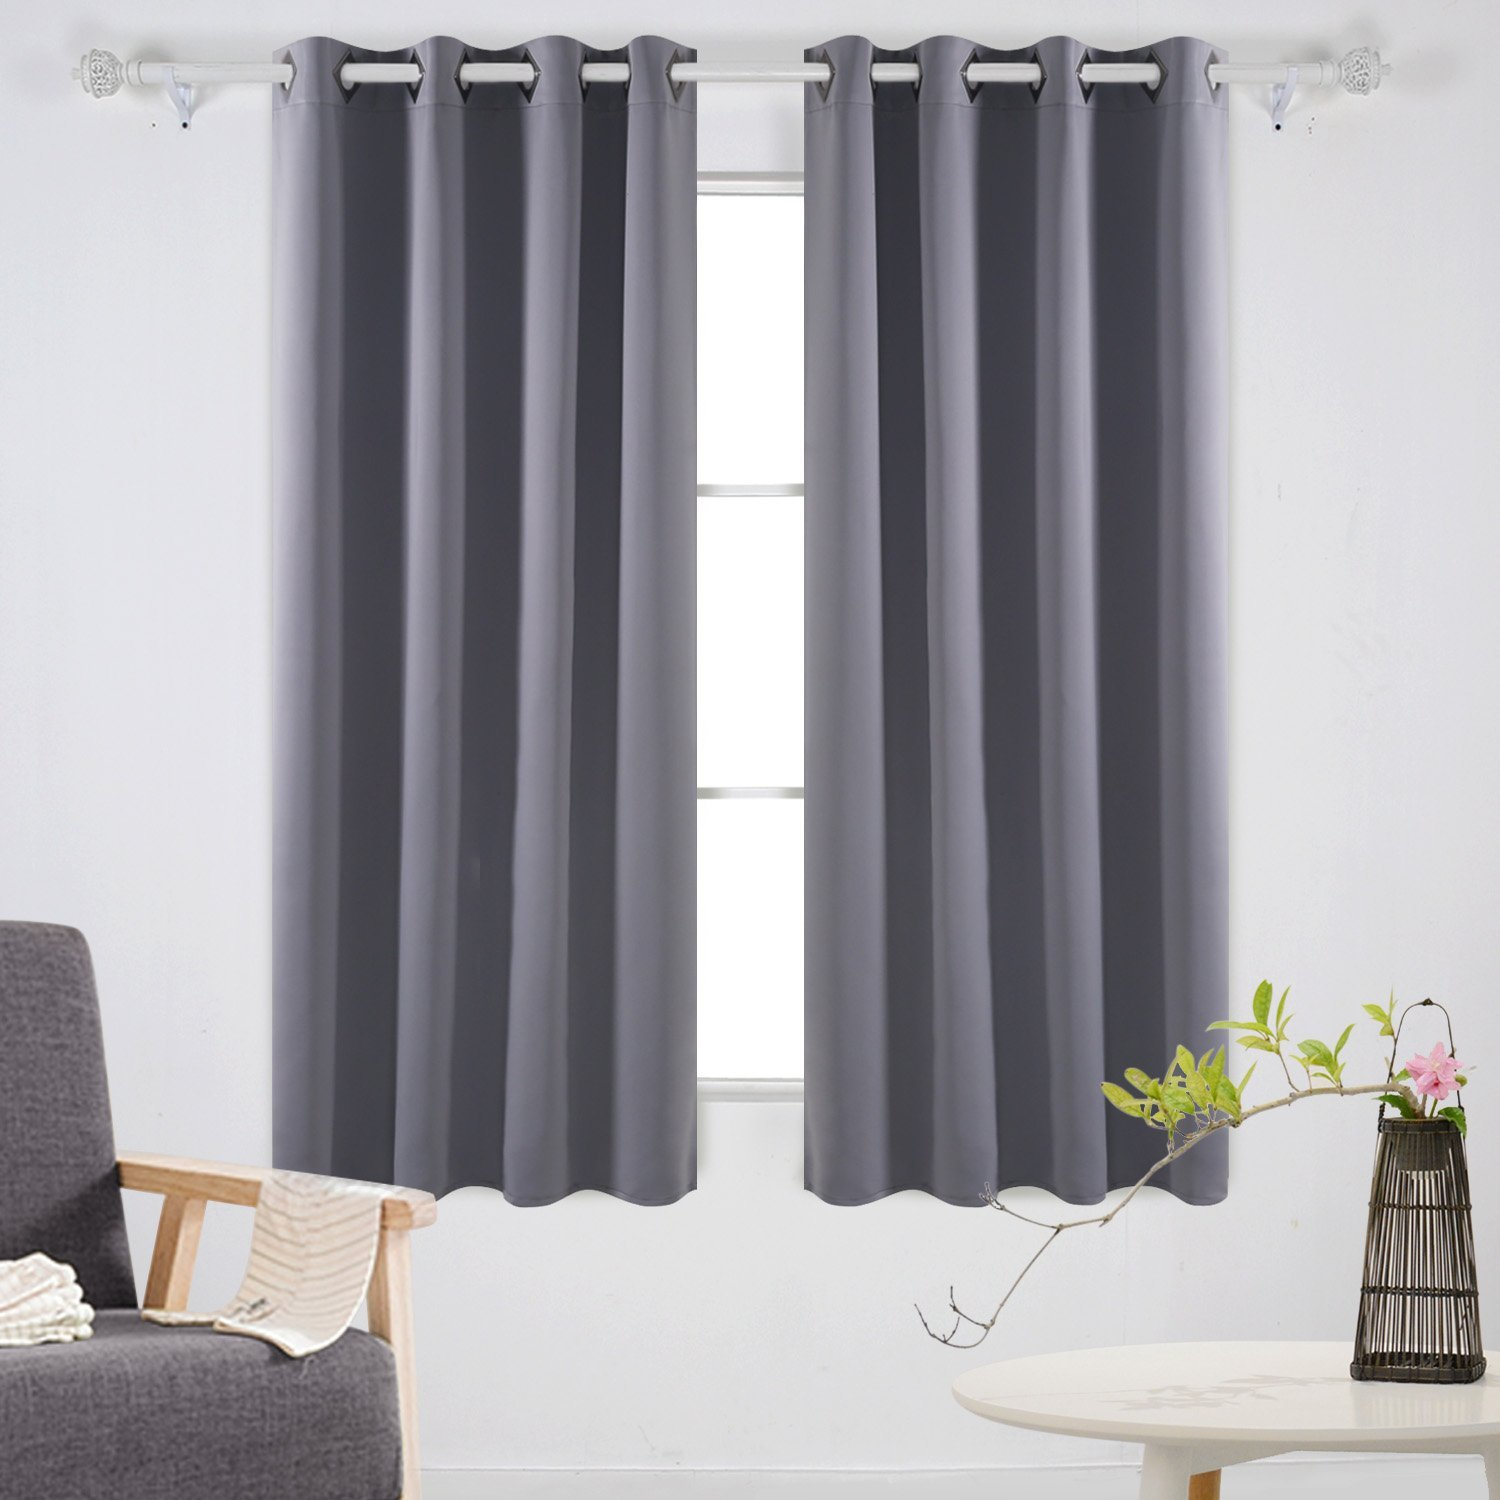 amazon.com: deconovo solid room darkening curtains thermal insulated  blackout curtains grommet blind OAAAURT